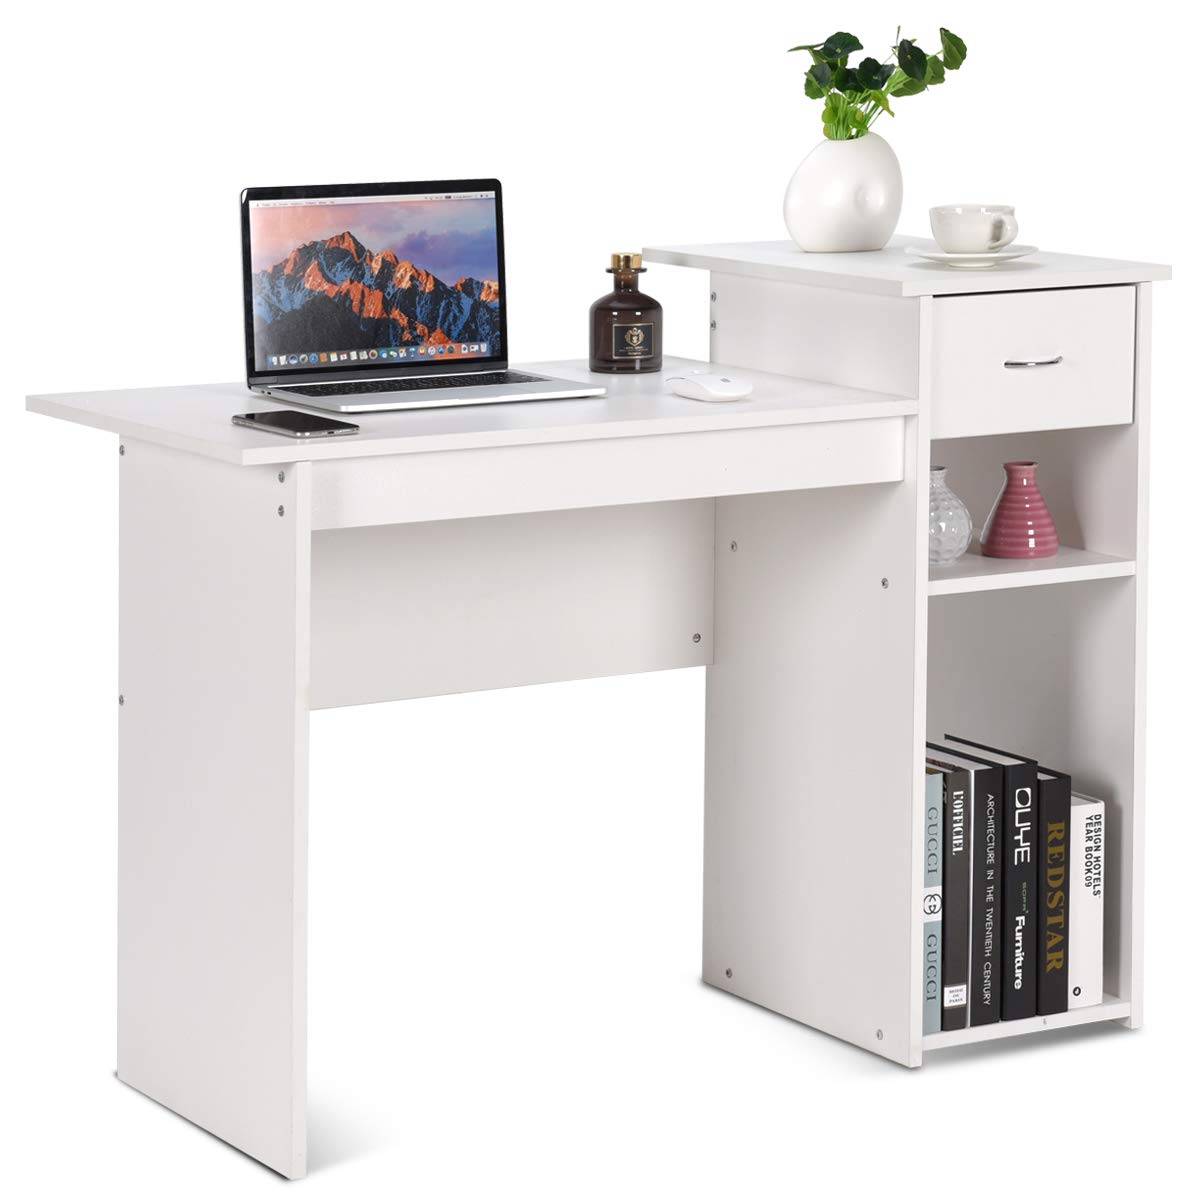 Tangkula Computer Desk, Home Office Wooden PC Laptop Desk, Modern Simple Style Wood Study Workstation, Writing Table with Storage Drawer Shelves, Wooden Furniture White